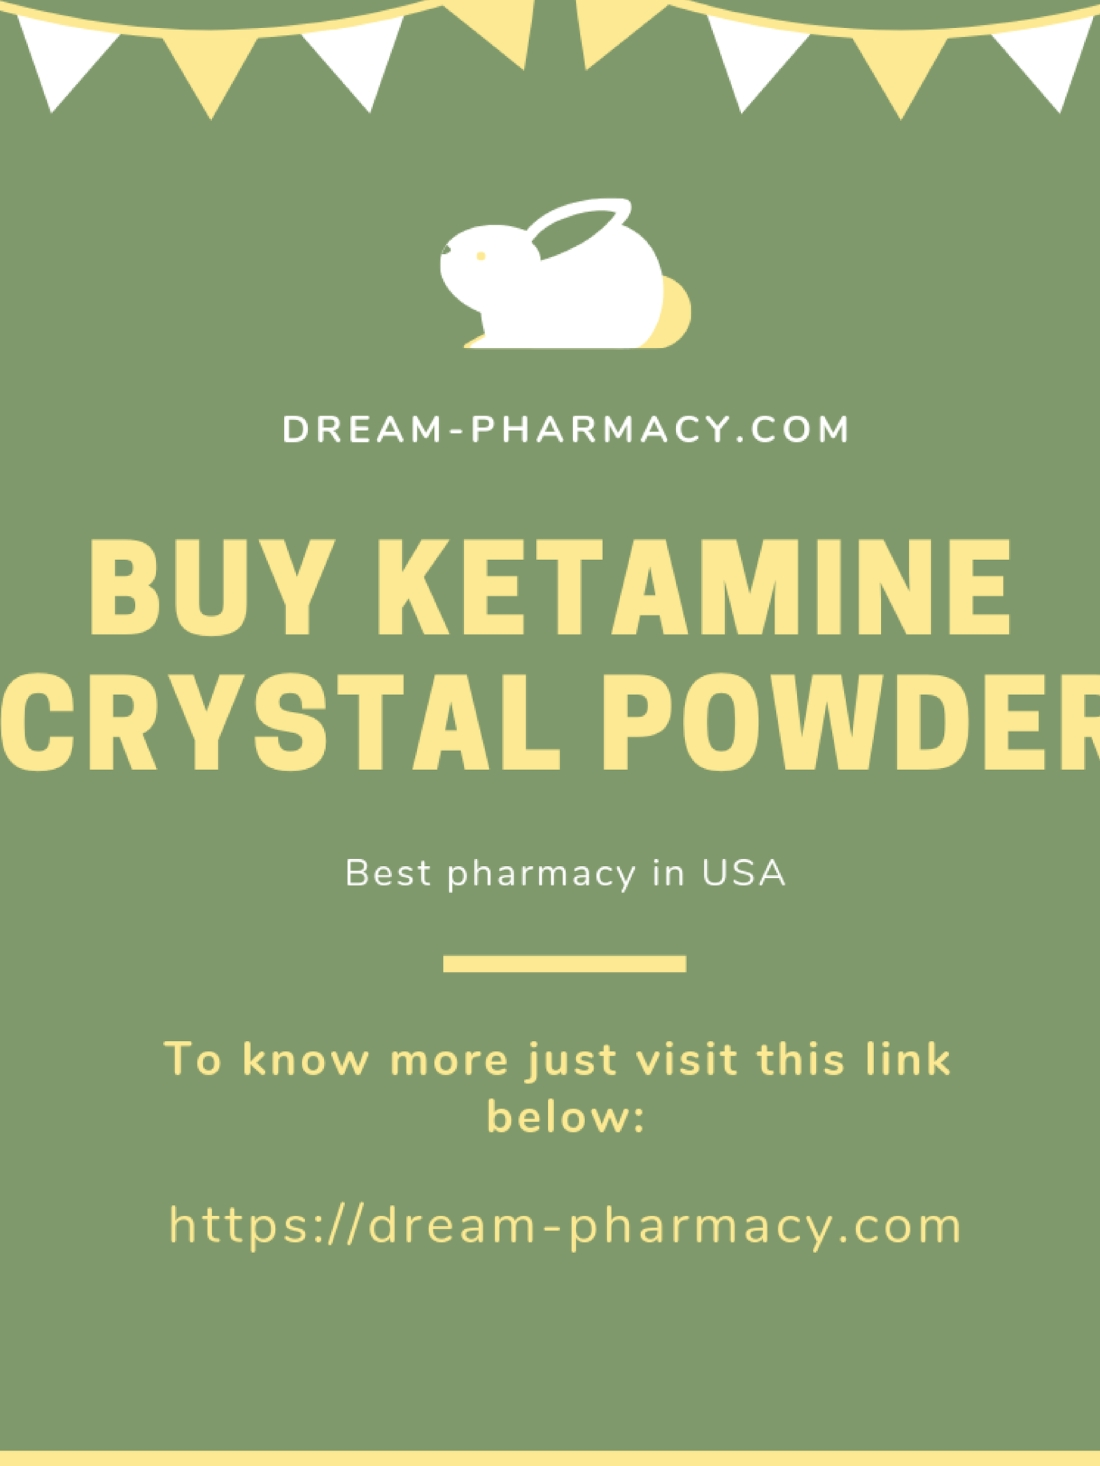 Buy ketamine crystal powder.jpg